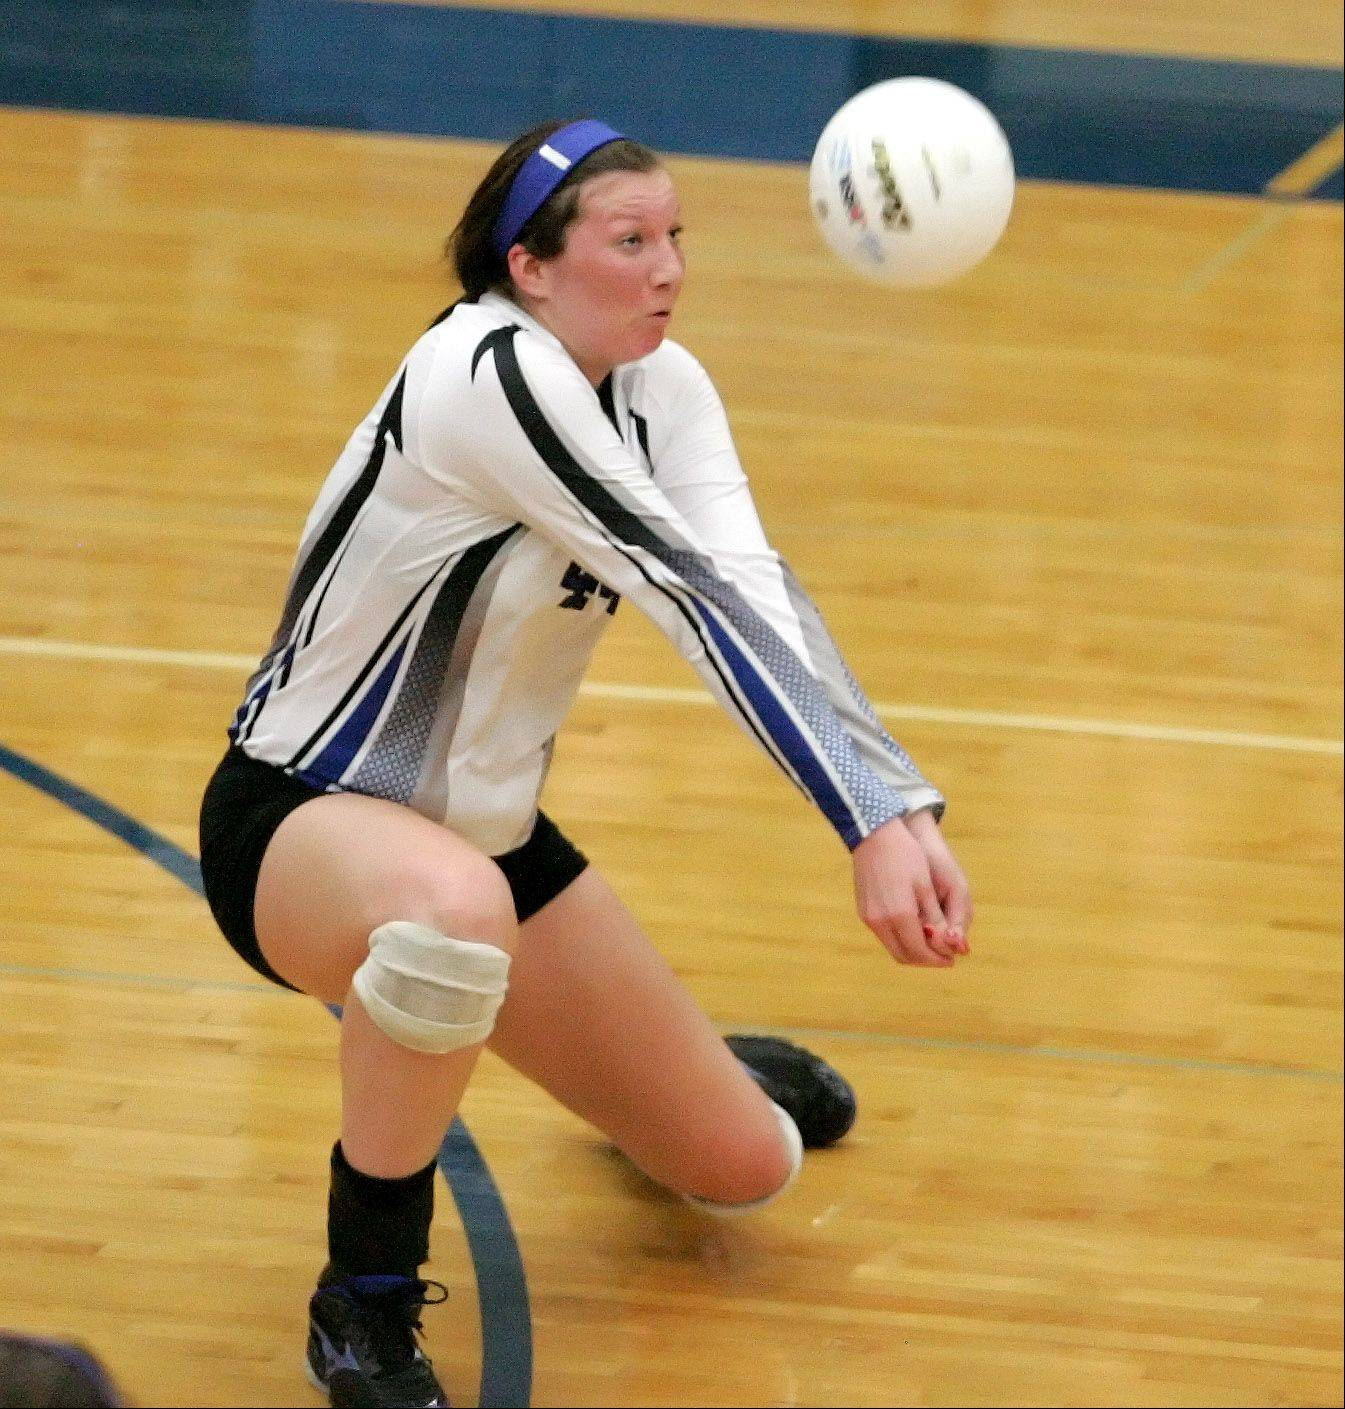 Maddie Haggerty of St. Francis digs in against Rosary during Monday's volleyball game in Wheaton.